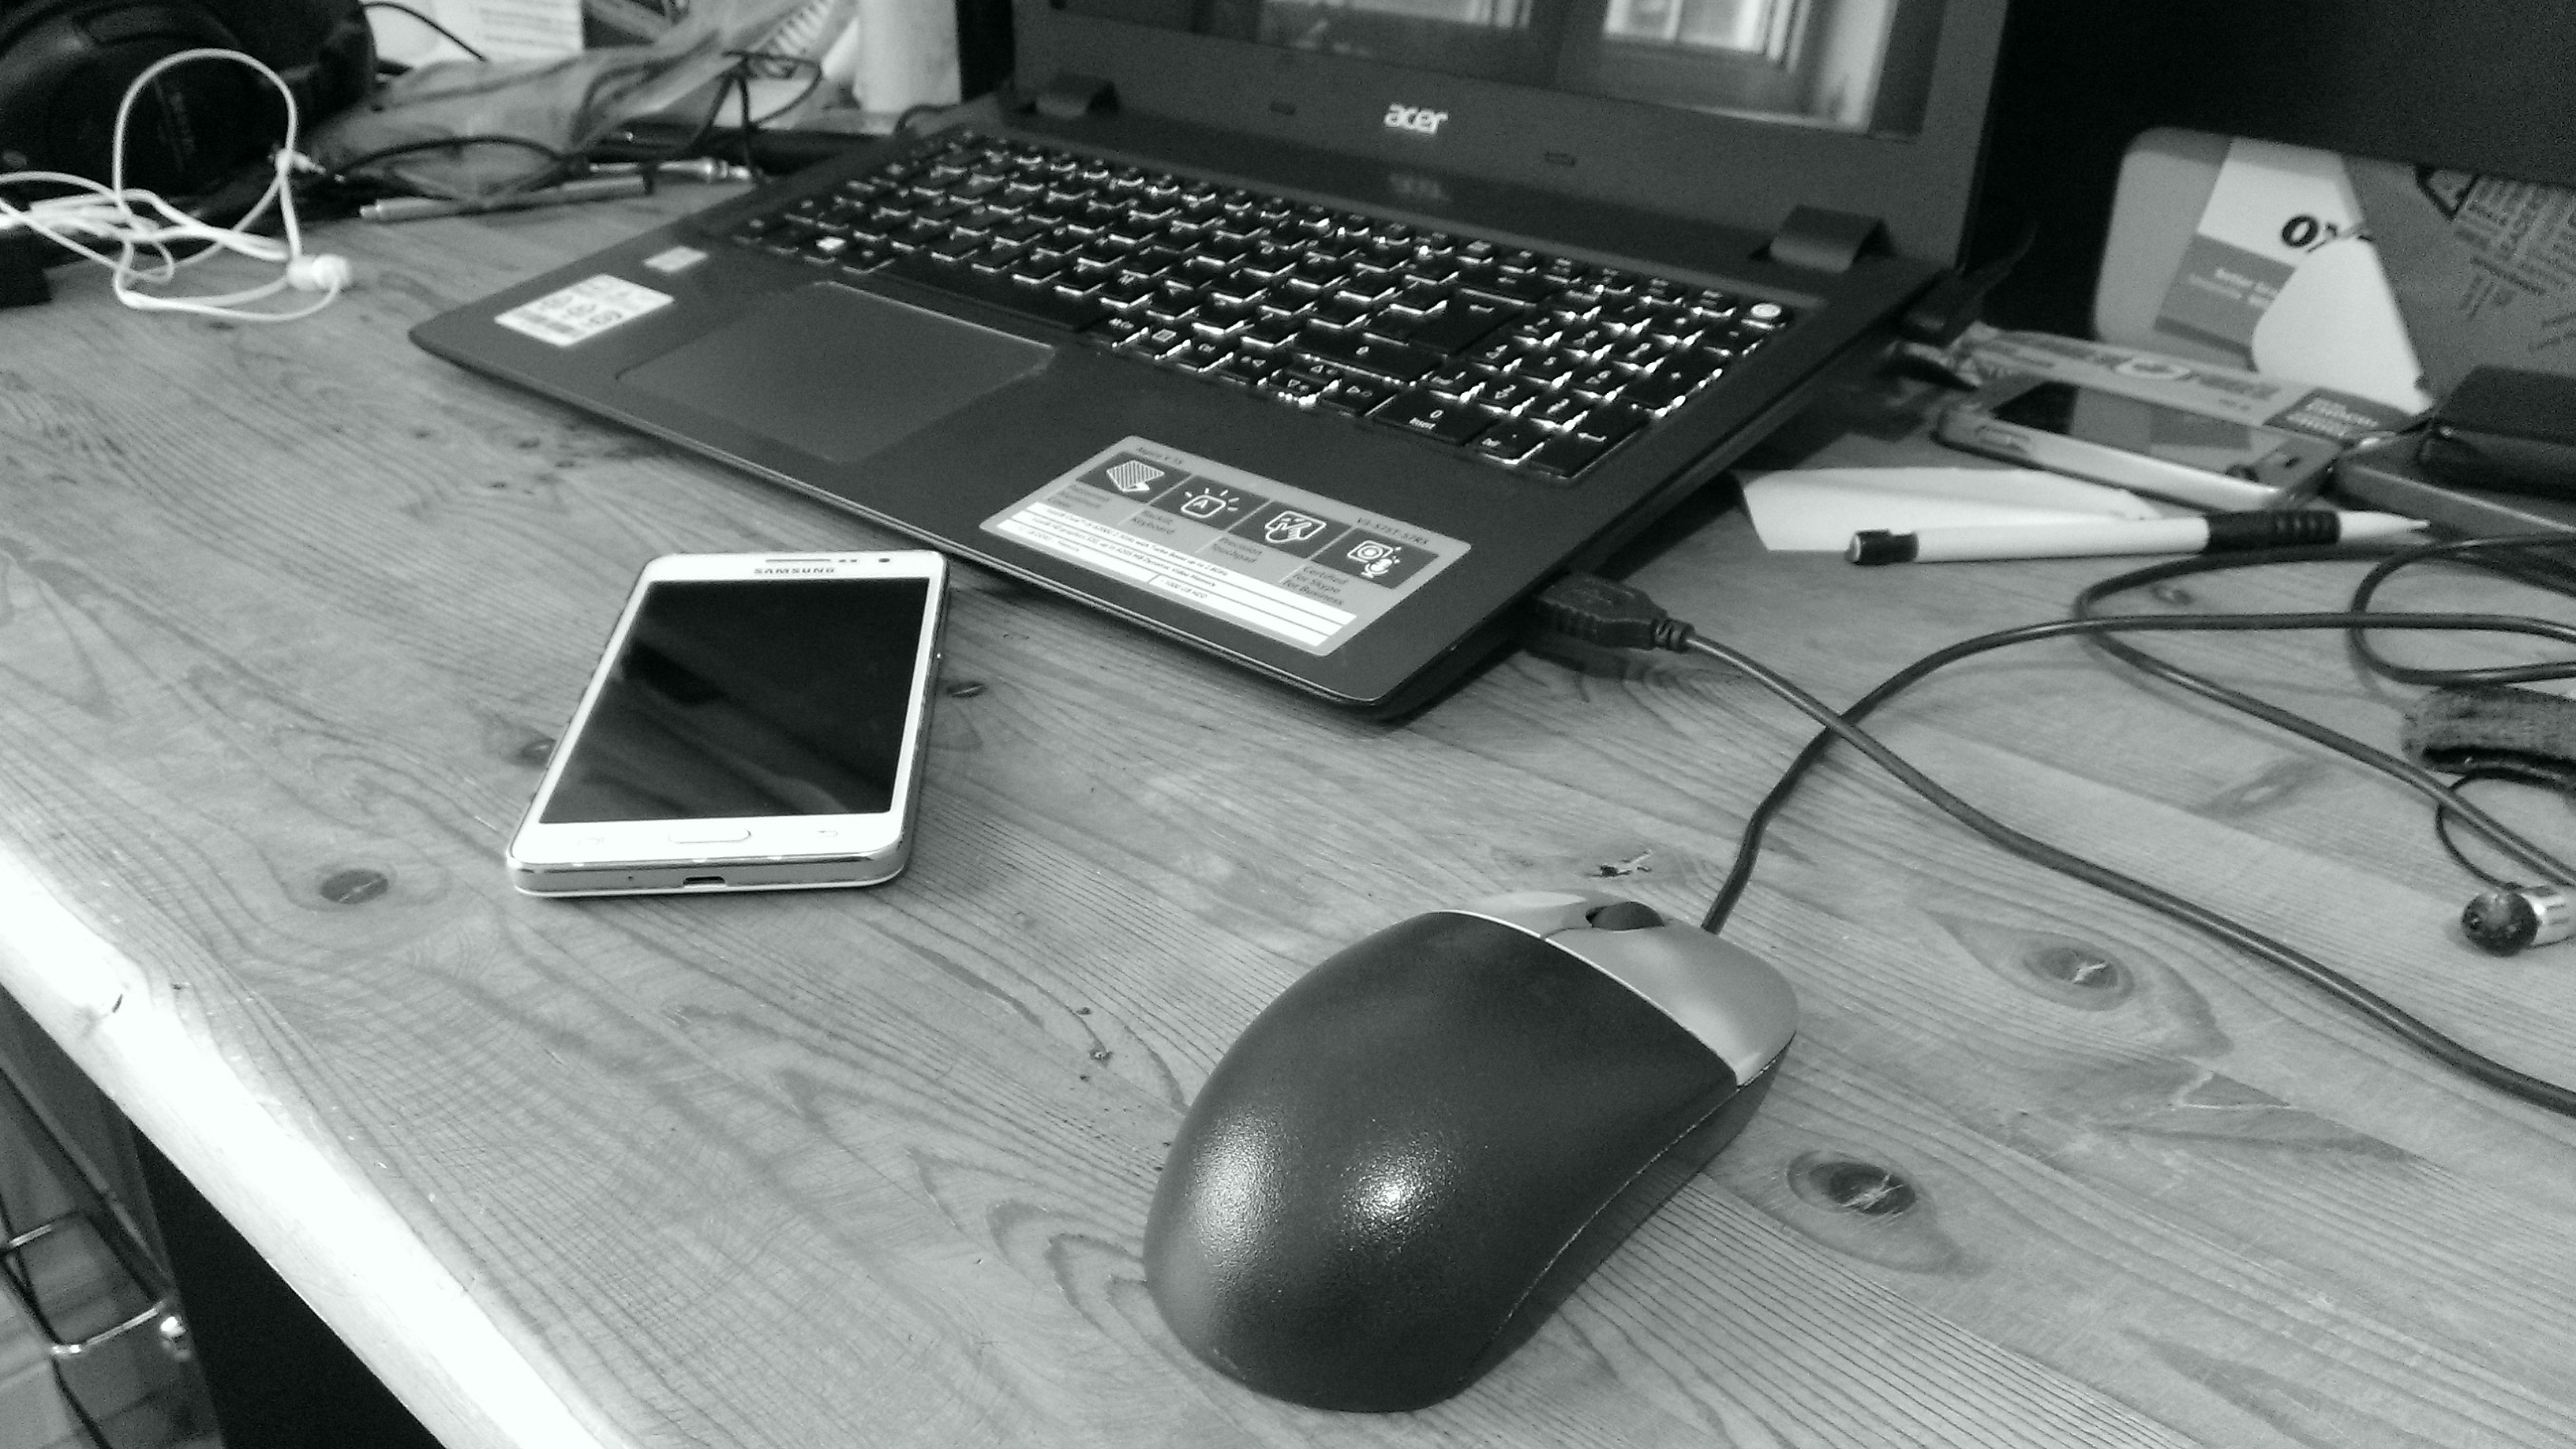 File:Computer mouse laptop and phone on a desk.jpg - Wikimedia Commons